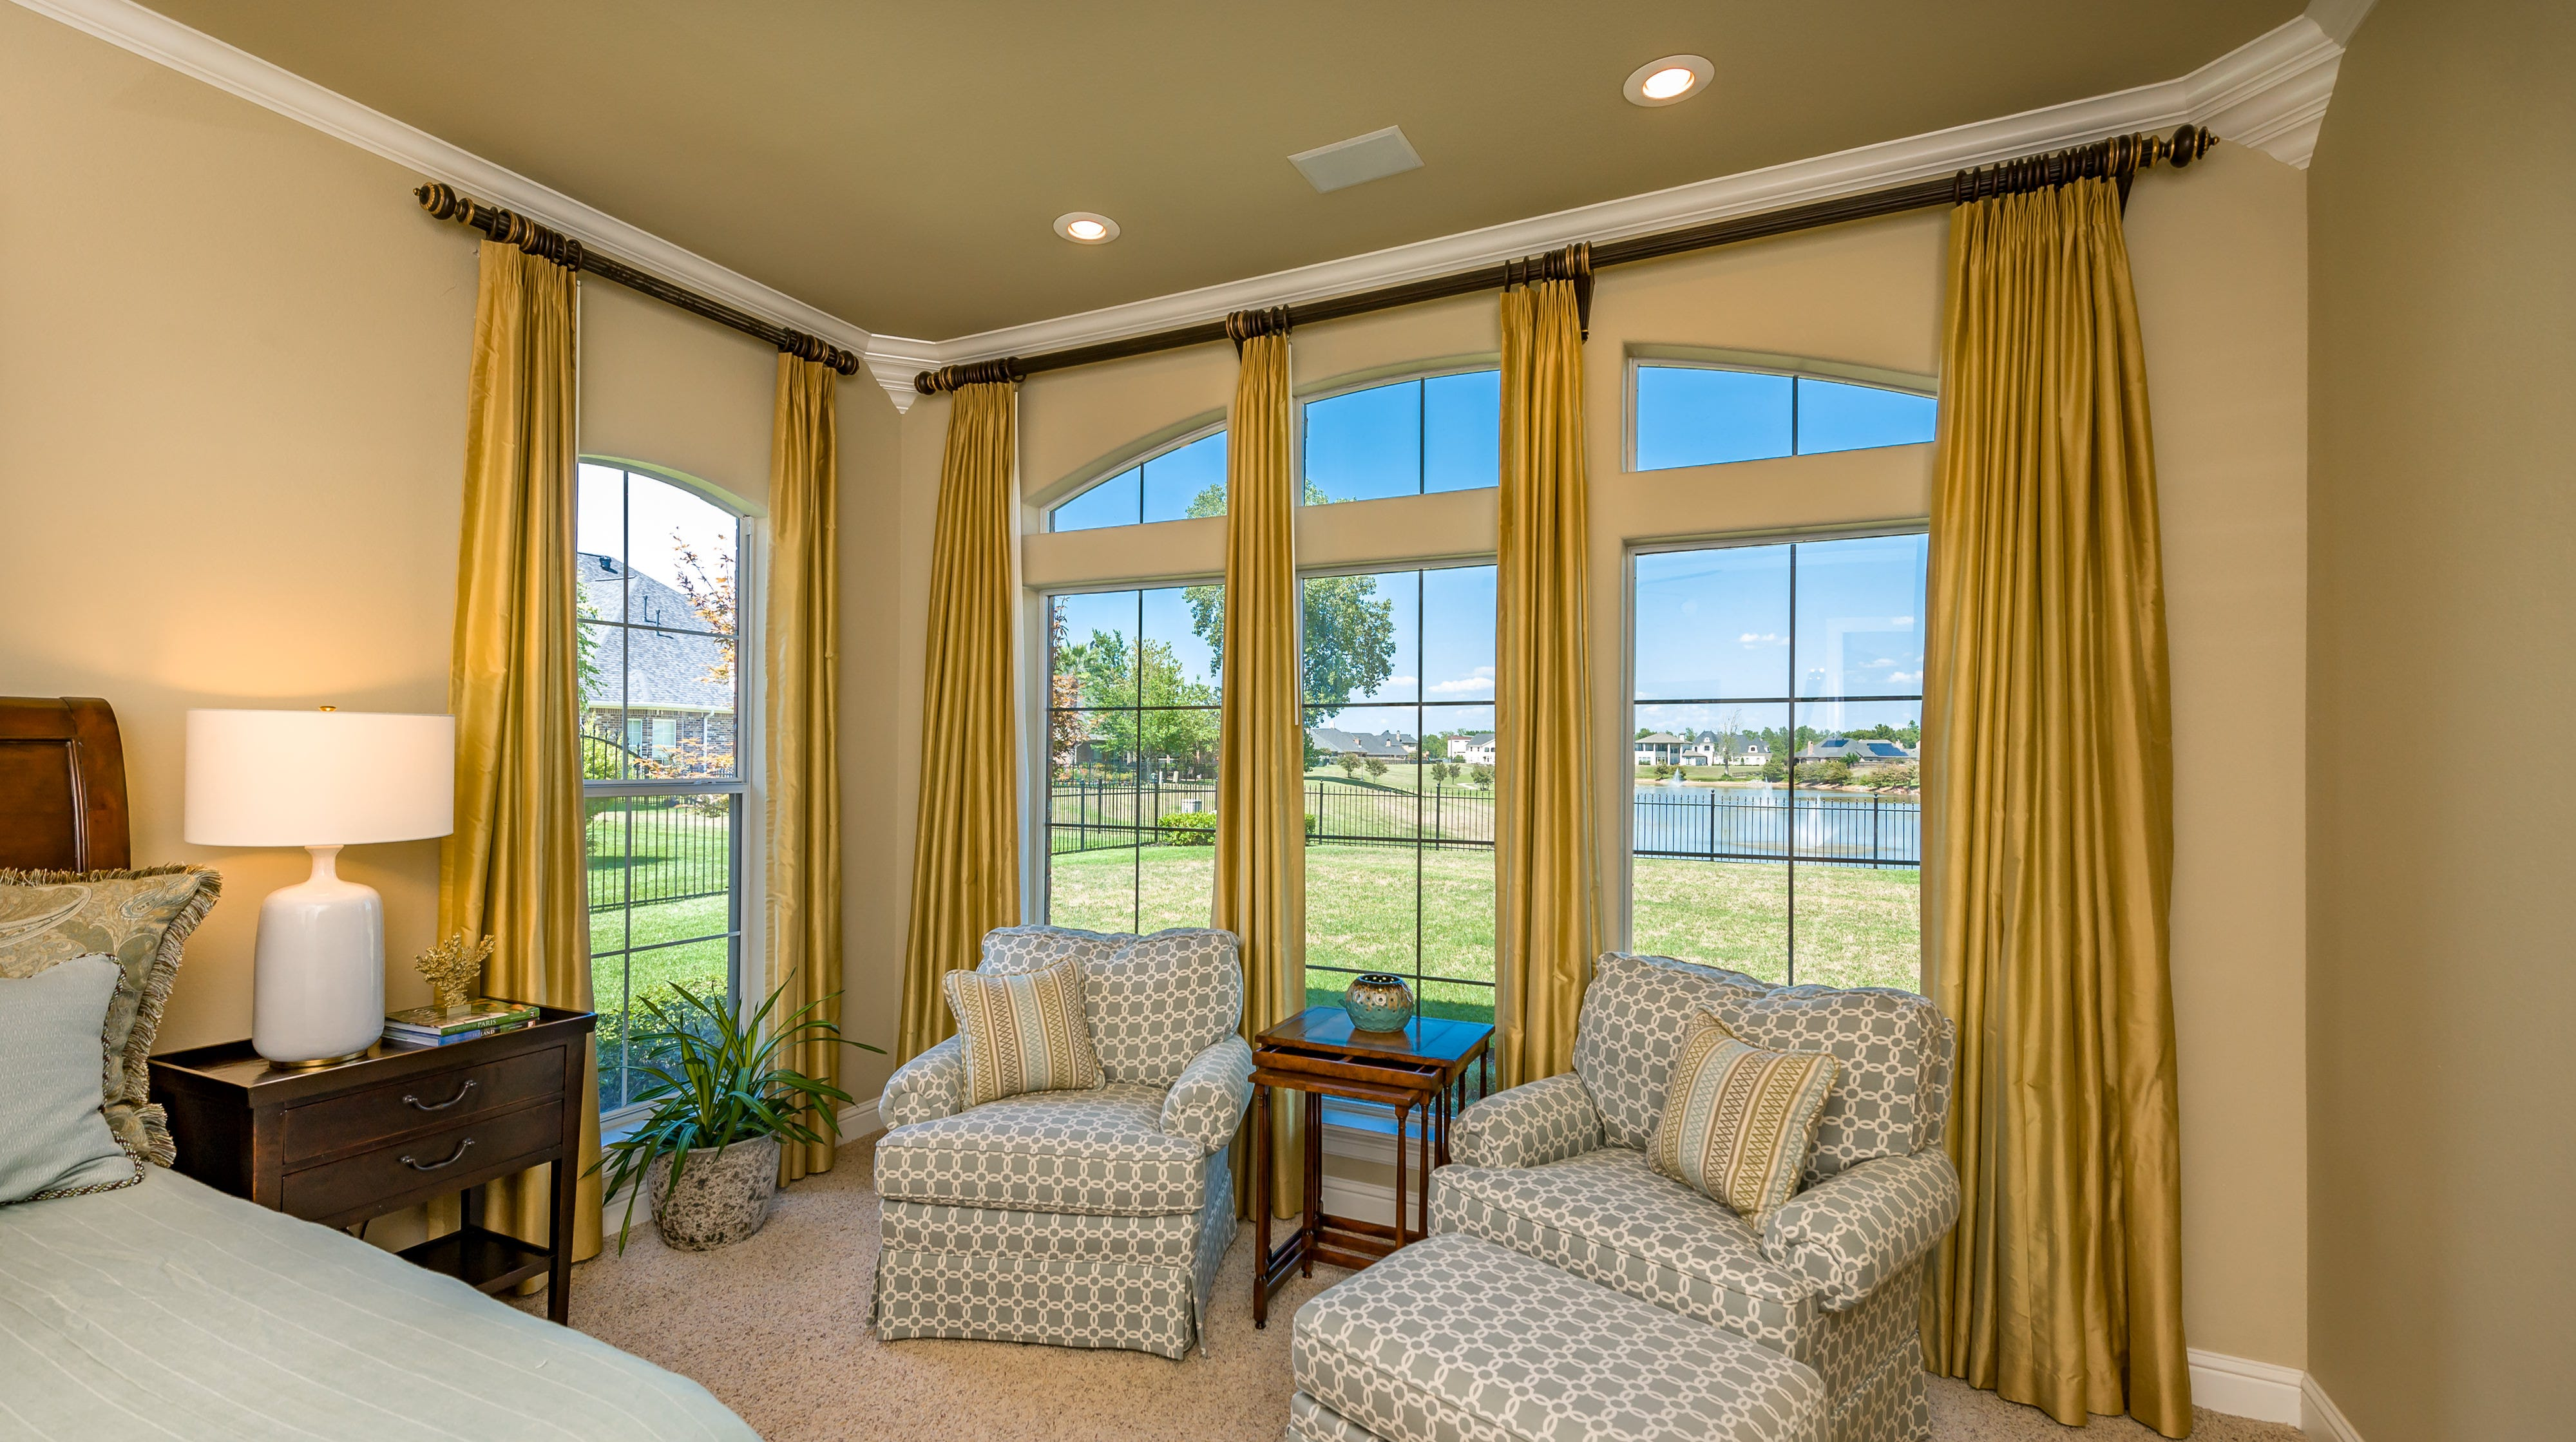 Most windows in the home allow for a water view.